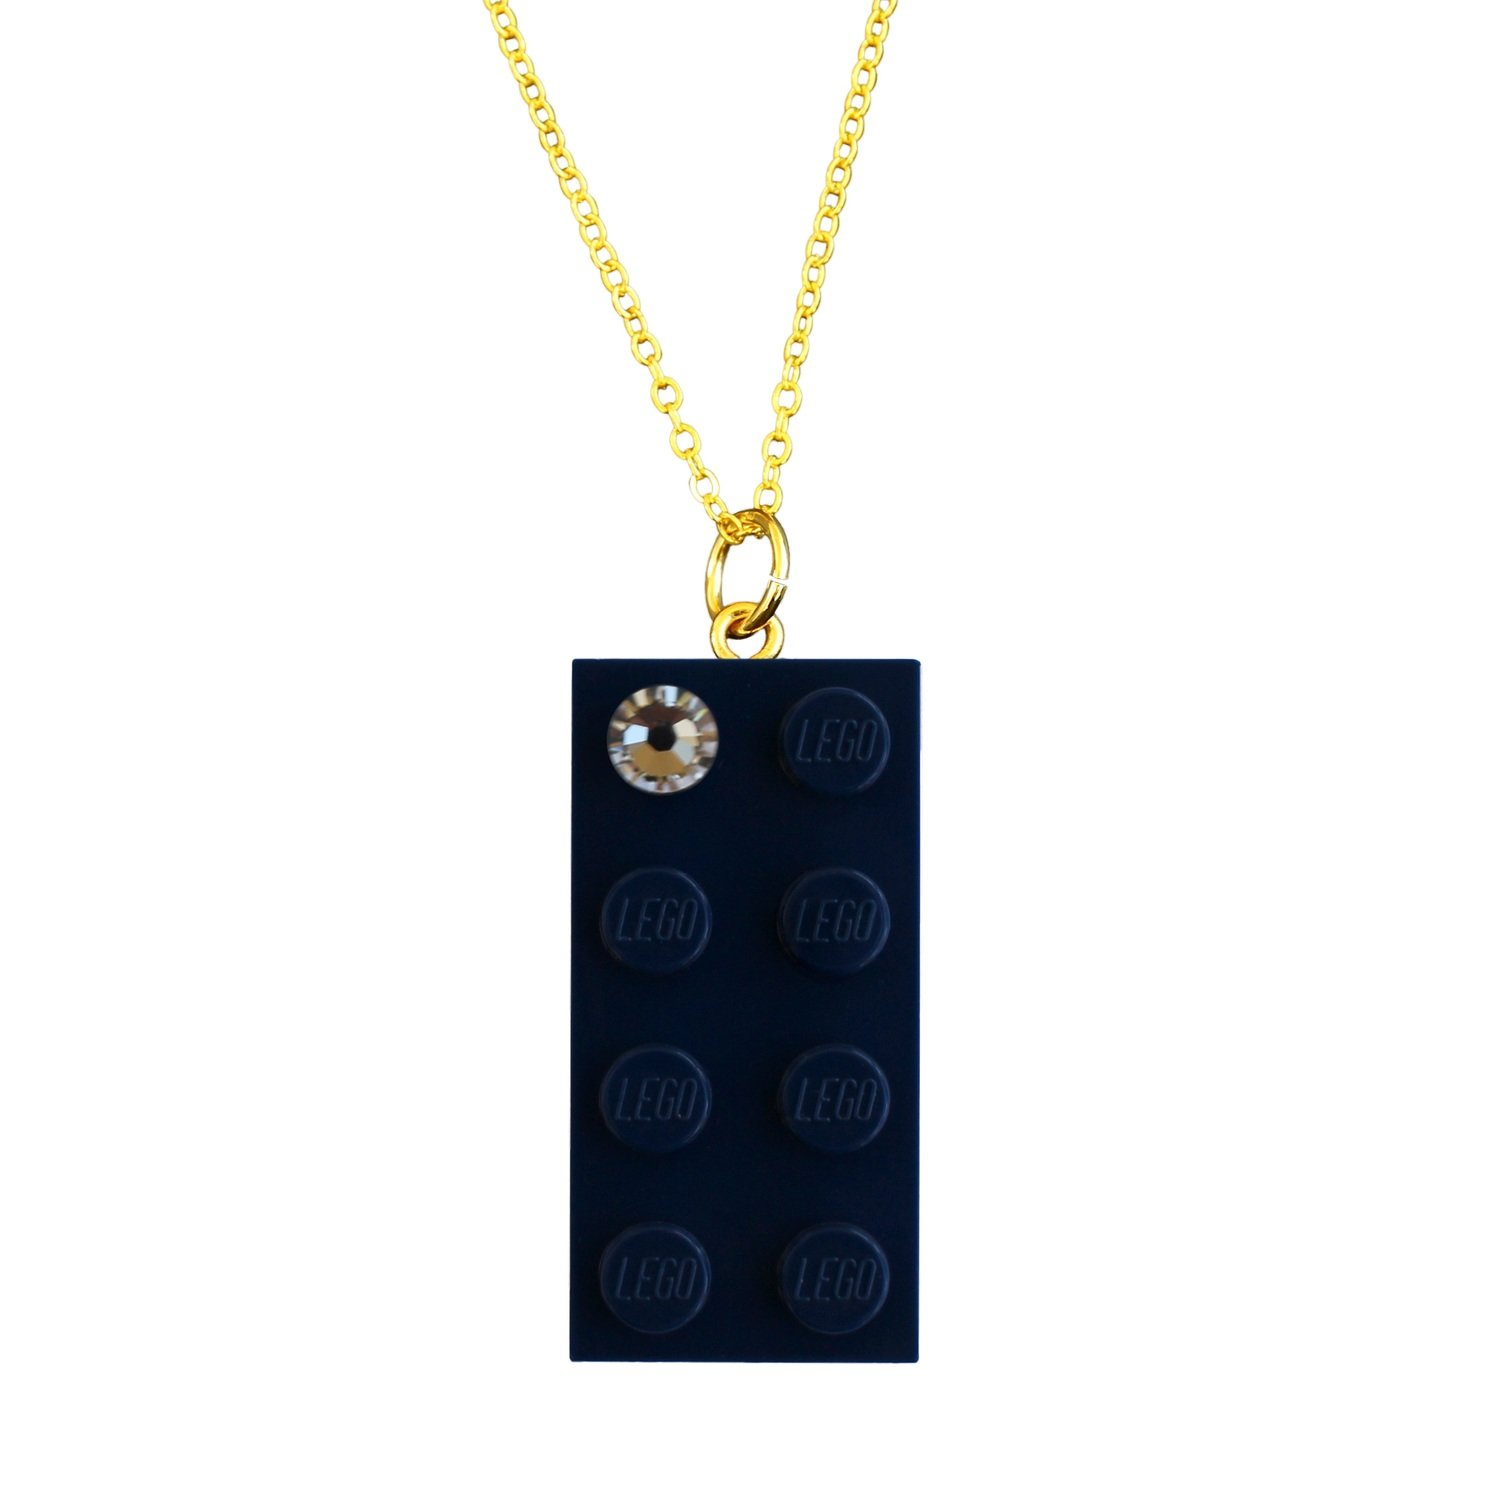 "Navy Blue LEGO® brick 2x4 with a 'Diamond' color SWAROVSKI® crystal on a Gold plated trace chain (18"" or 24"")"